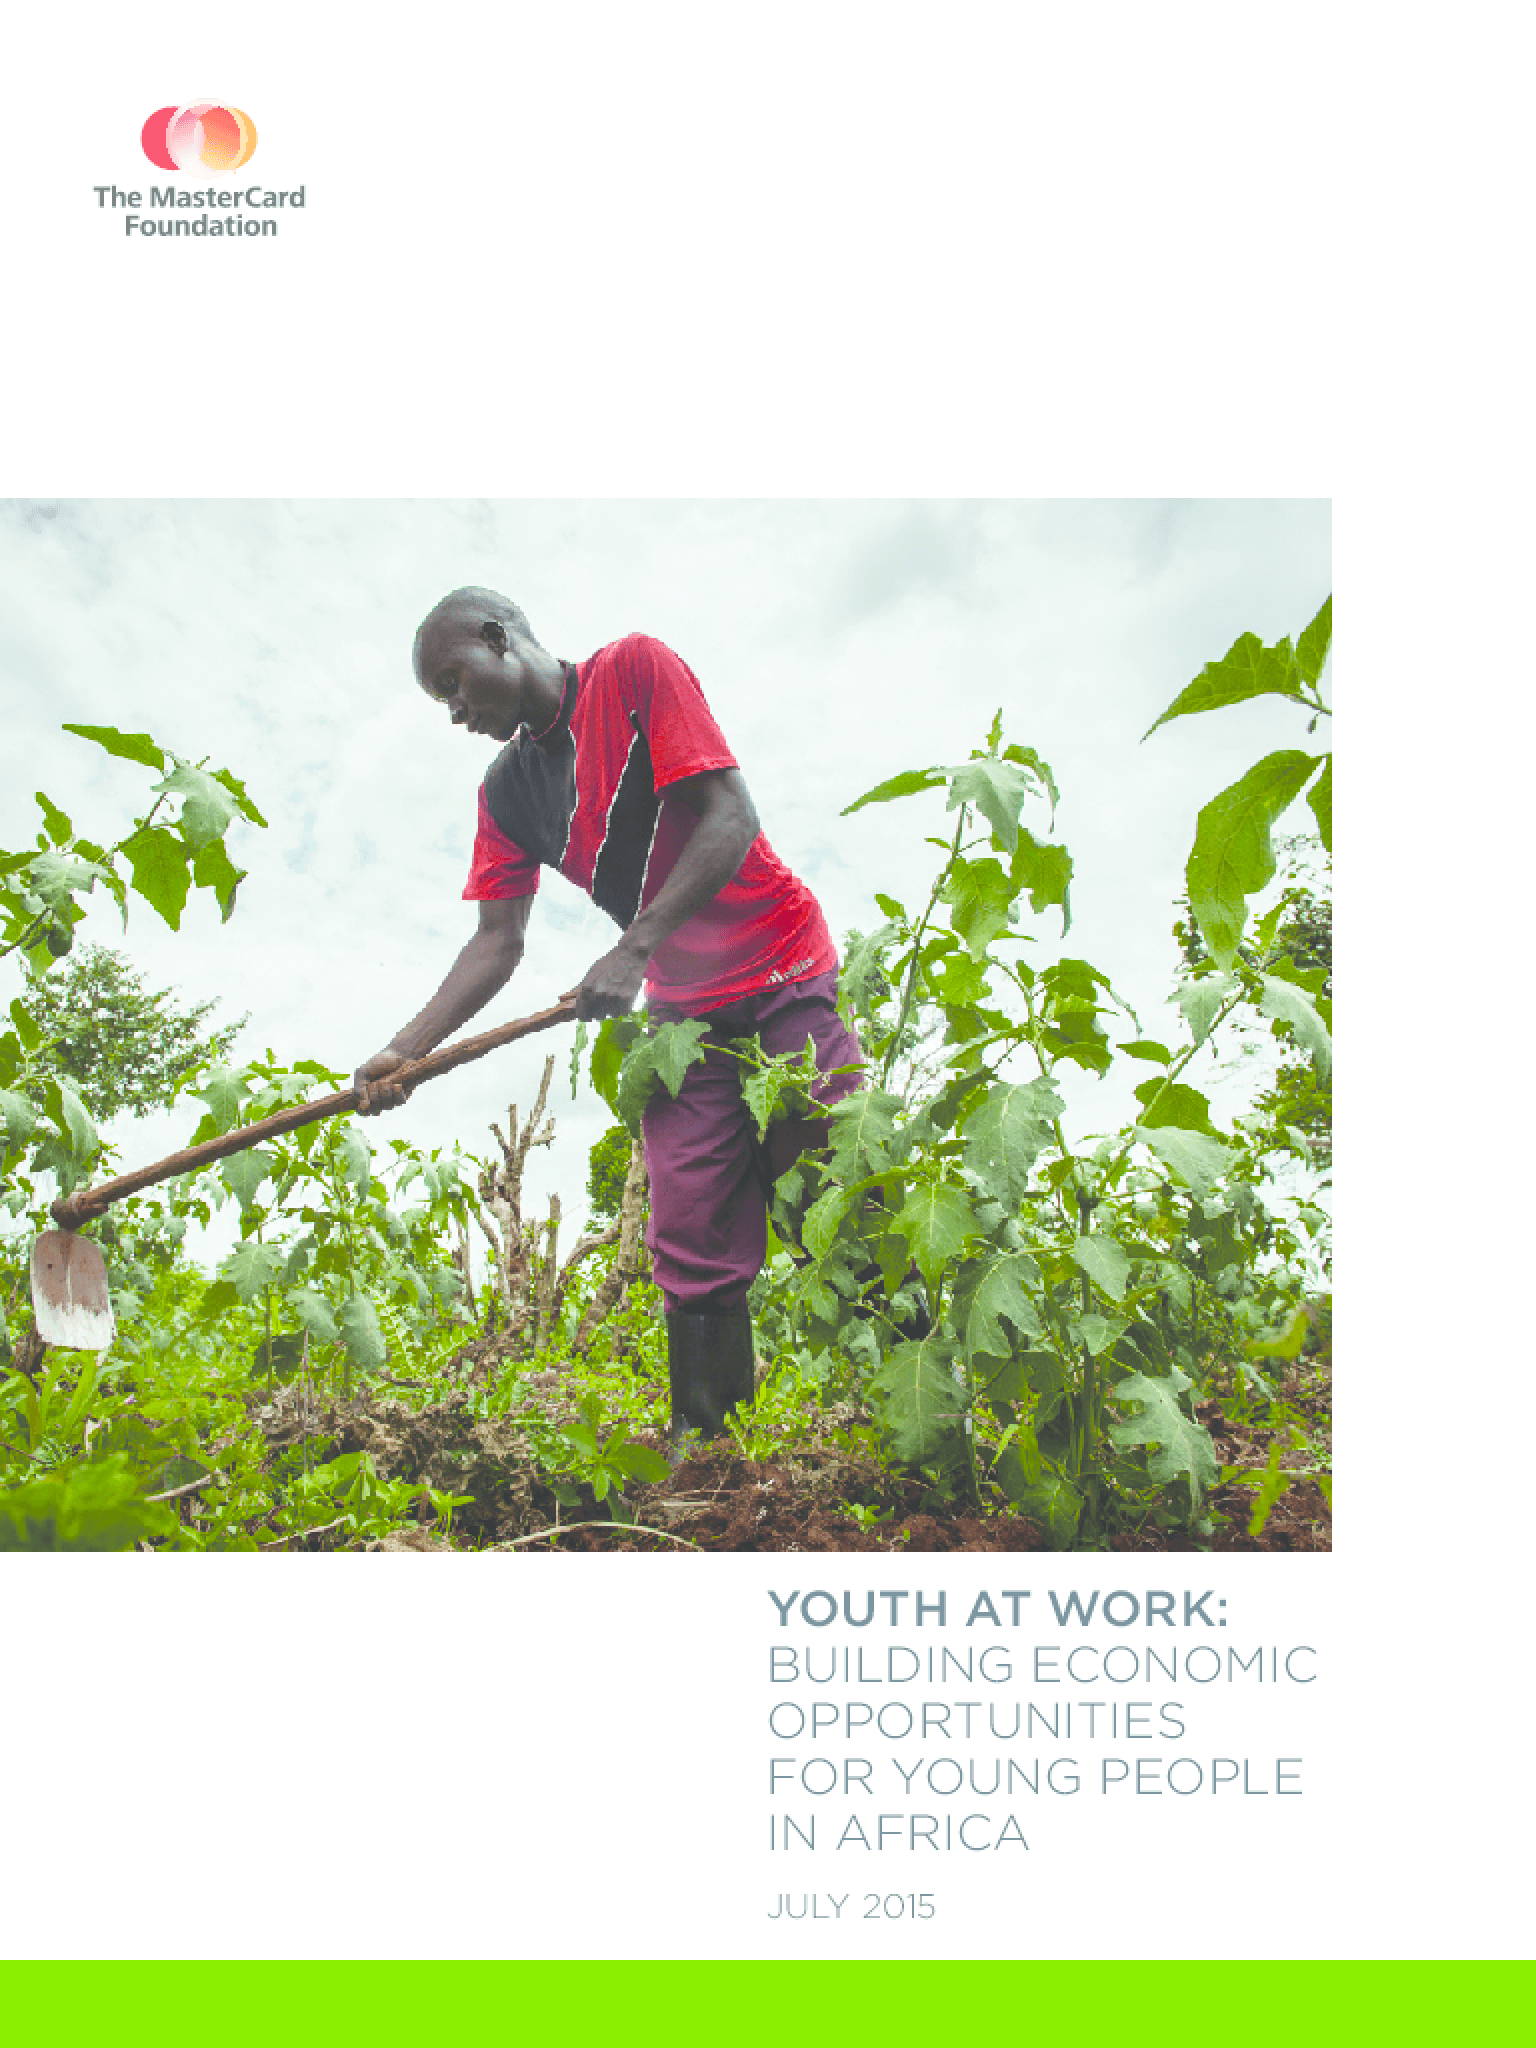 Youth at Work: Building Economic Opportunities for Young People in Africa